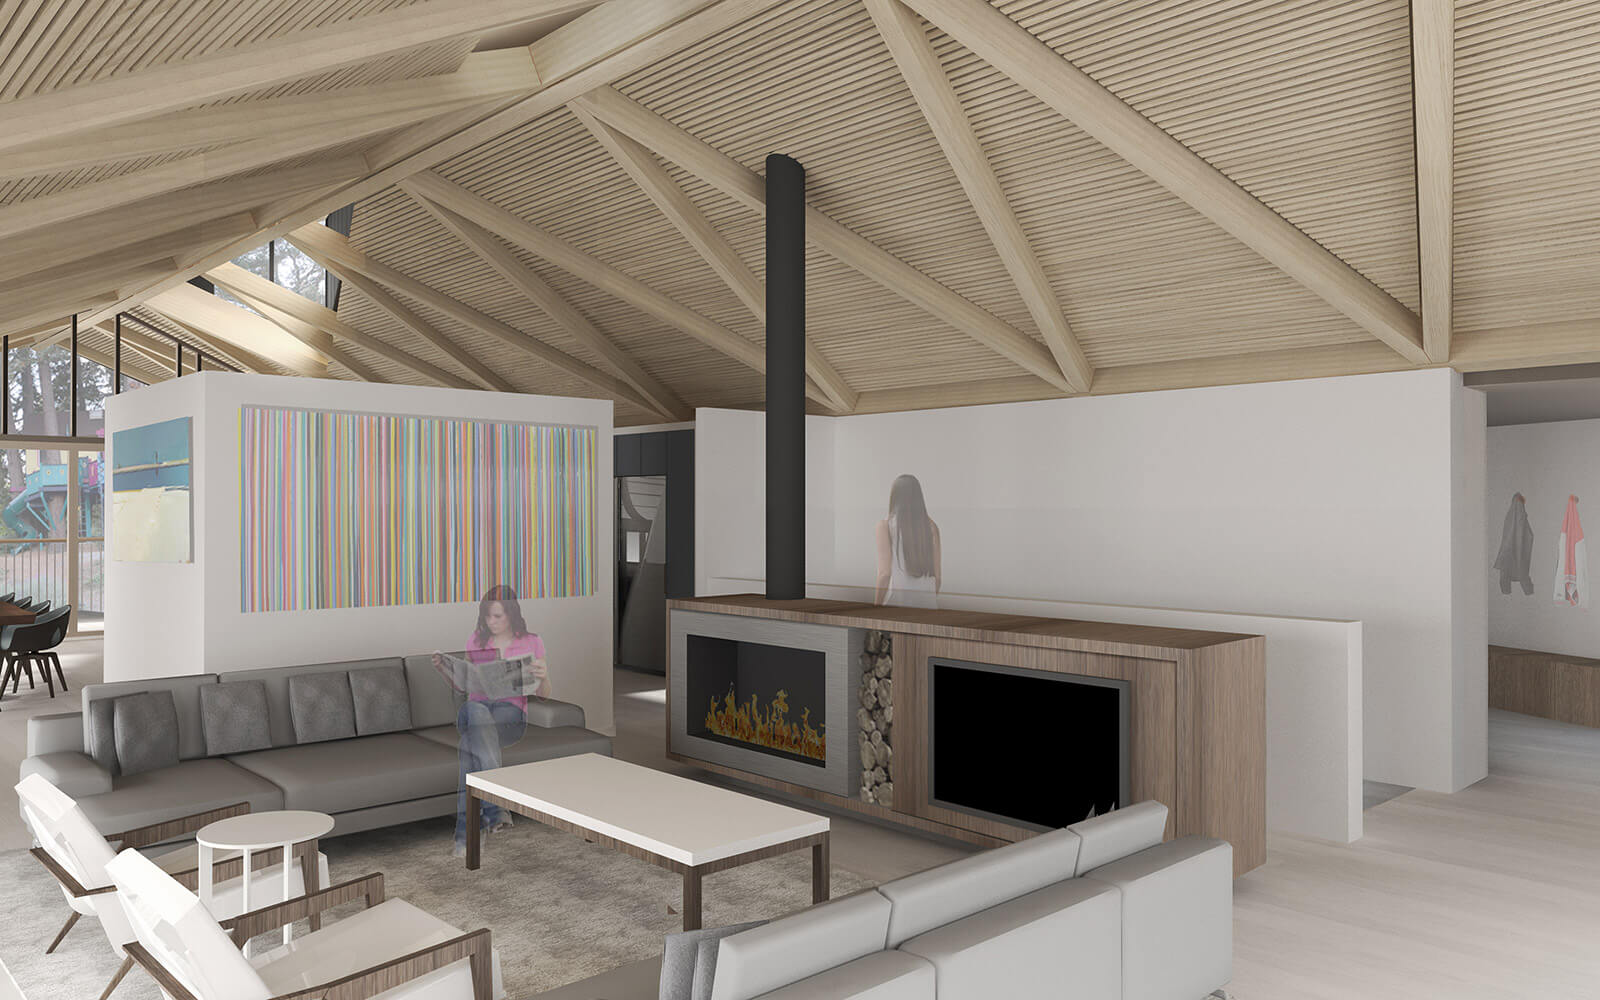 studio vara residential woodside ii fireplace structural ceiling